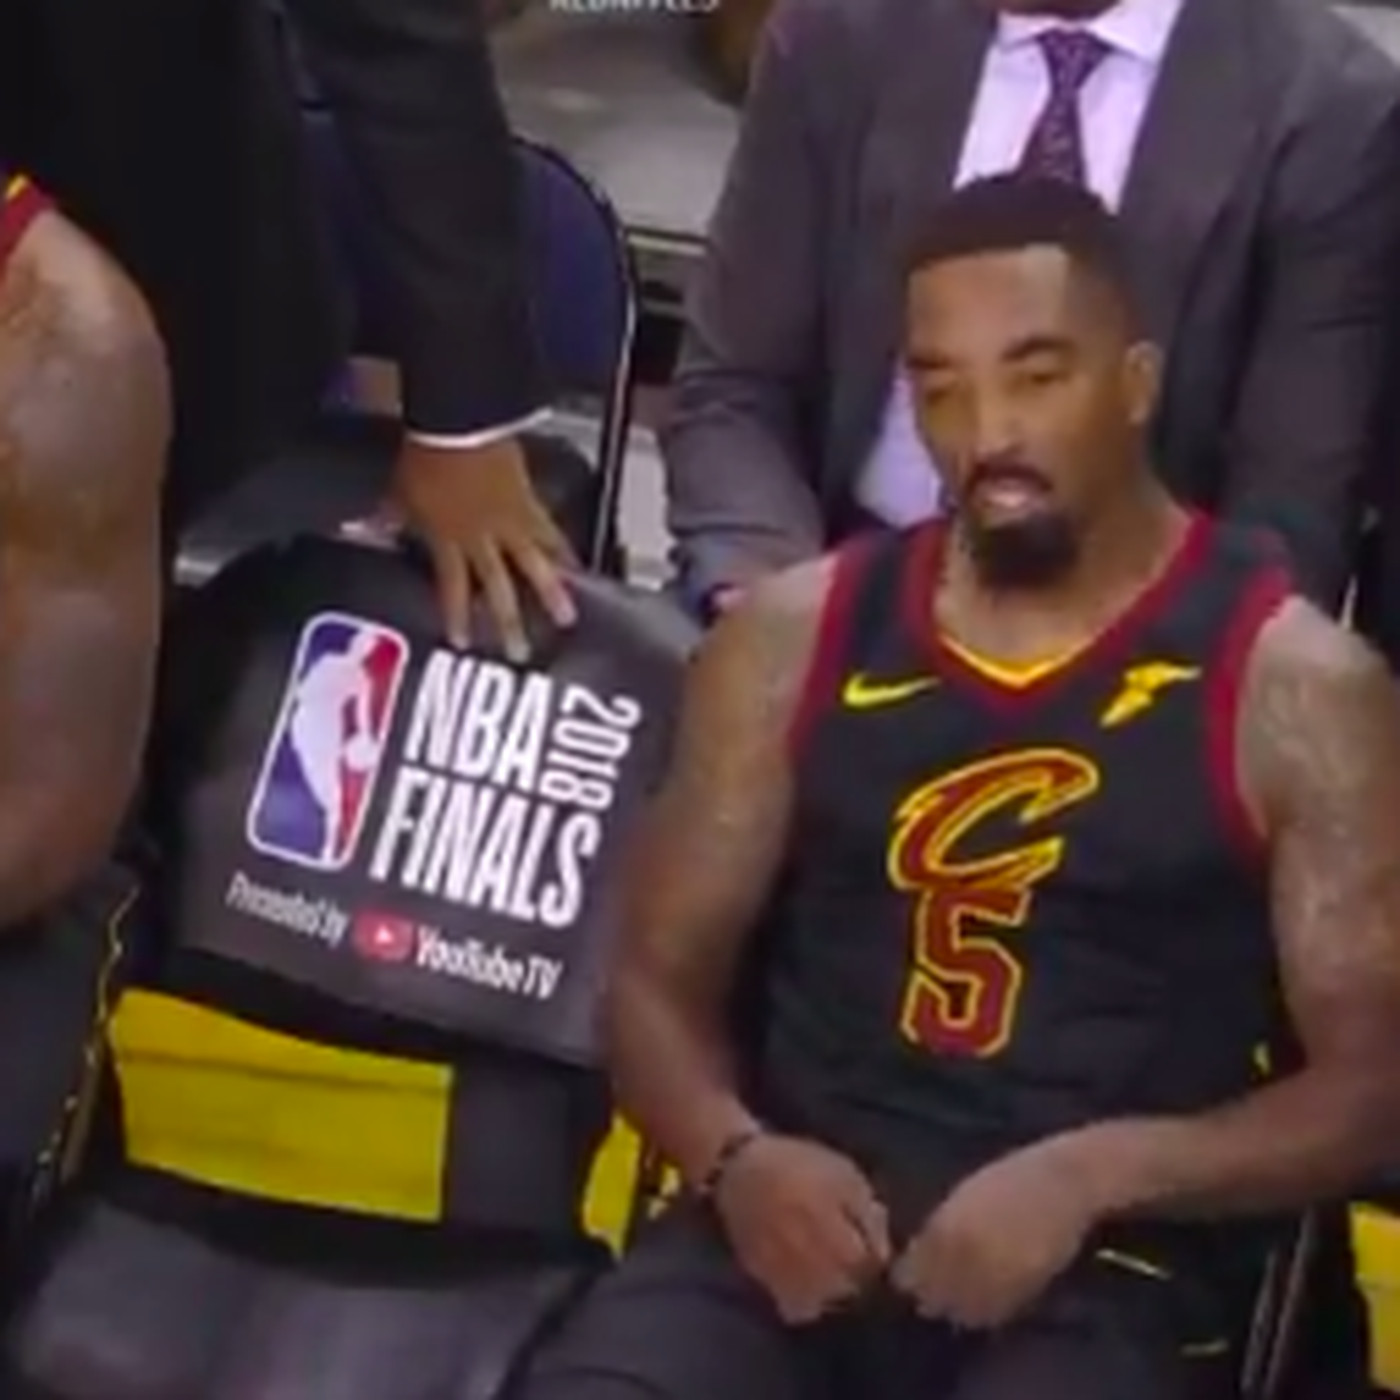 a12cddcdb747 J.R. Smith on the Cavs  bench after his Game 1 screwup is the saddest video  you ll see this year